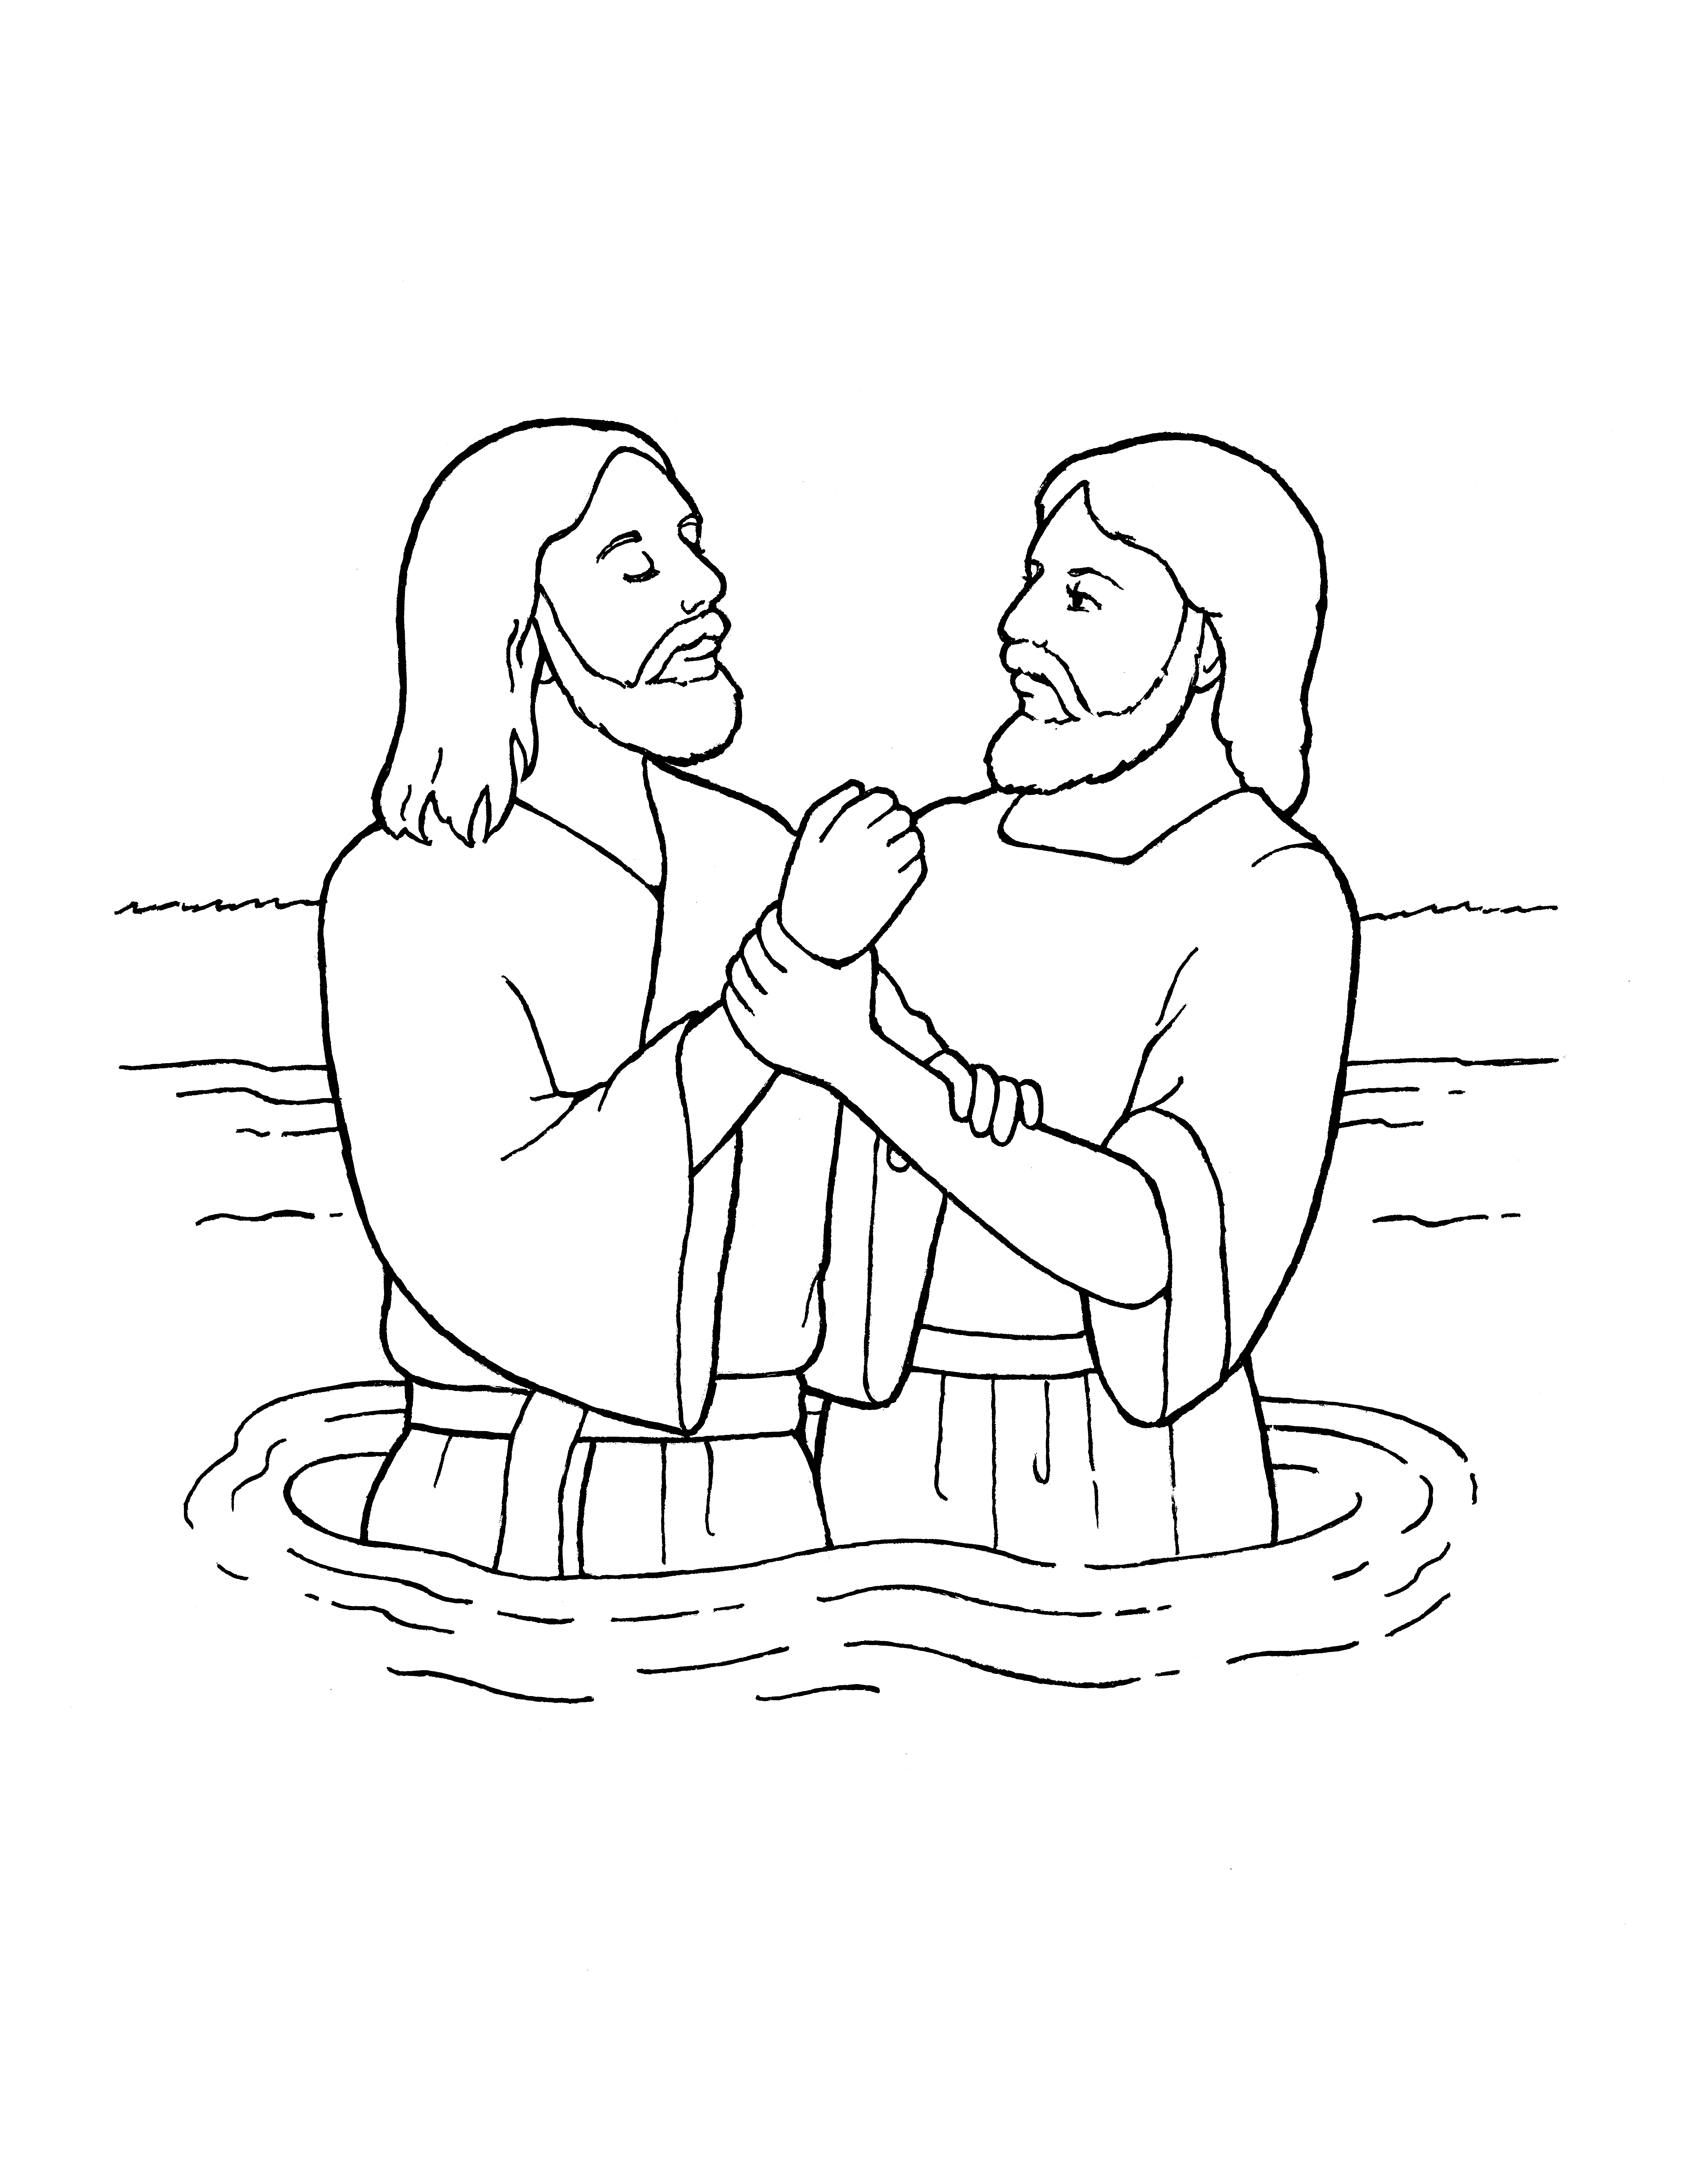 An illustration of John the Baptist baptizing Jesus Christ, from the nursery manual Behold Your Little Ones (2008), page 103.